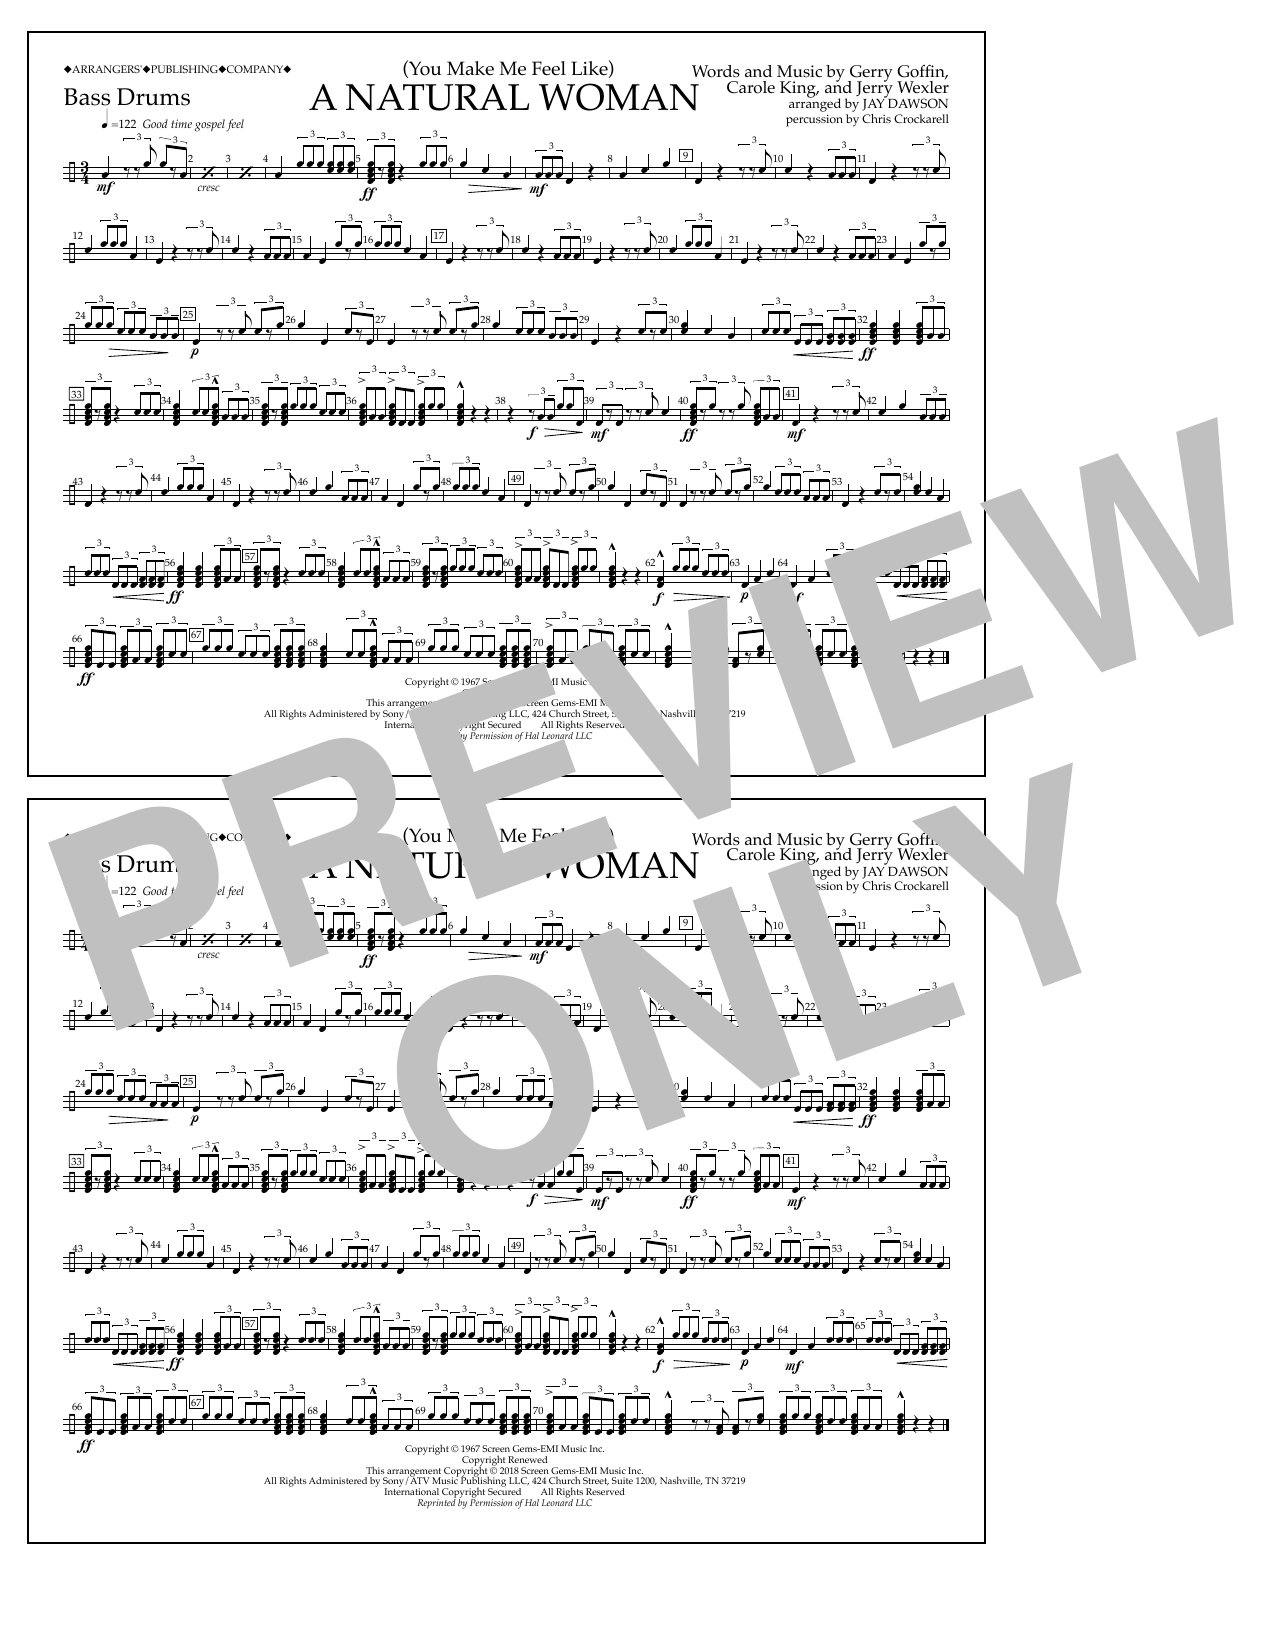 Download Aretha Franklin '(You Make Me Feel Like) A Natural Woman (arr. Jay Dawson) - Bass Drums' Digital Sheet Music Notes & Chords and start playing in minutes